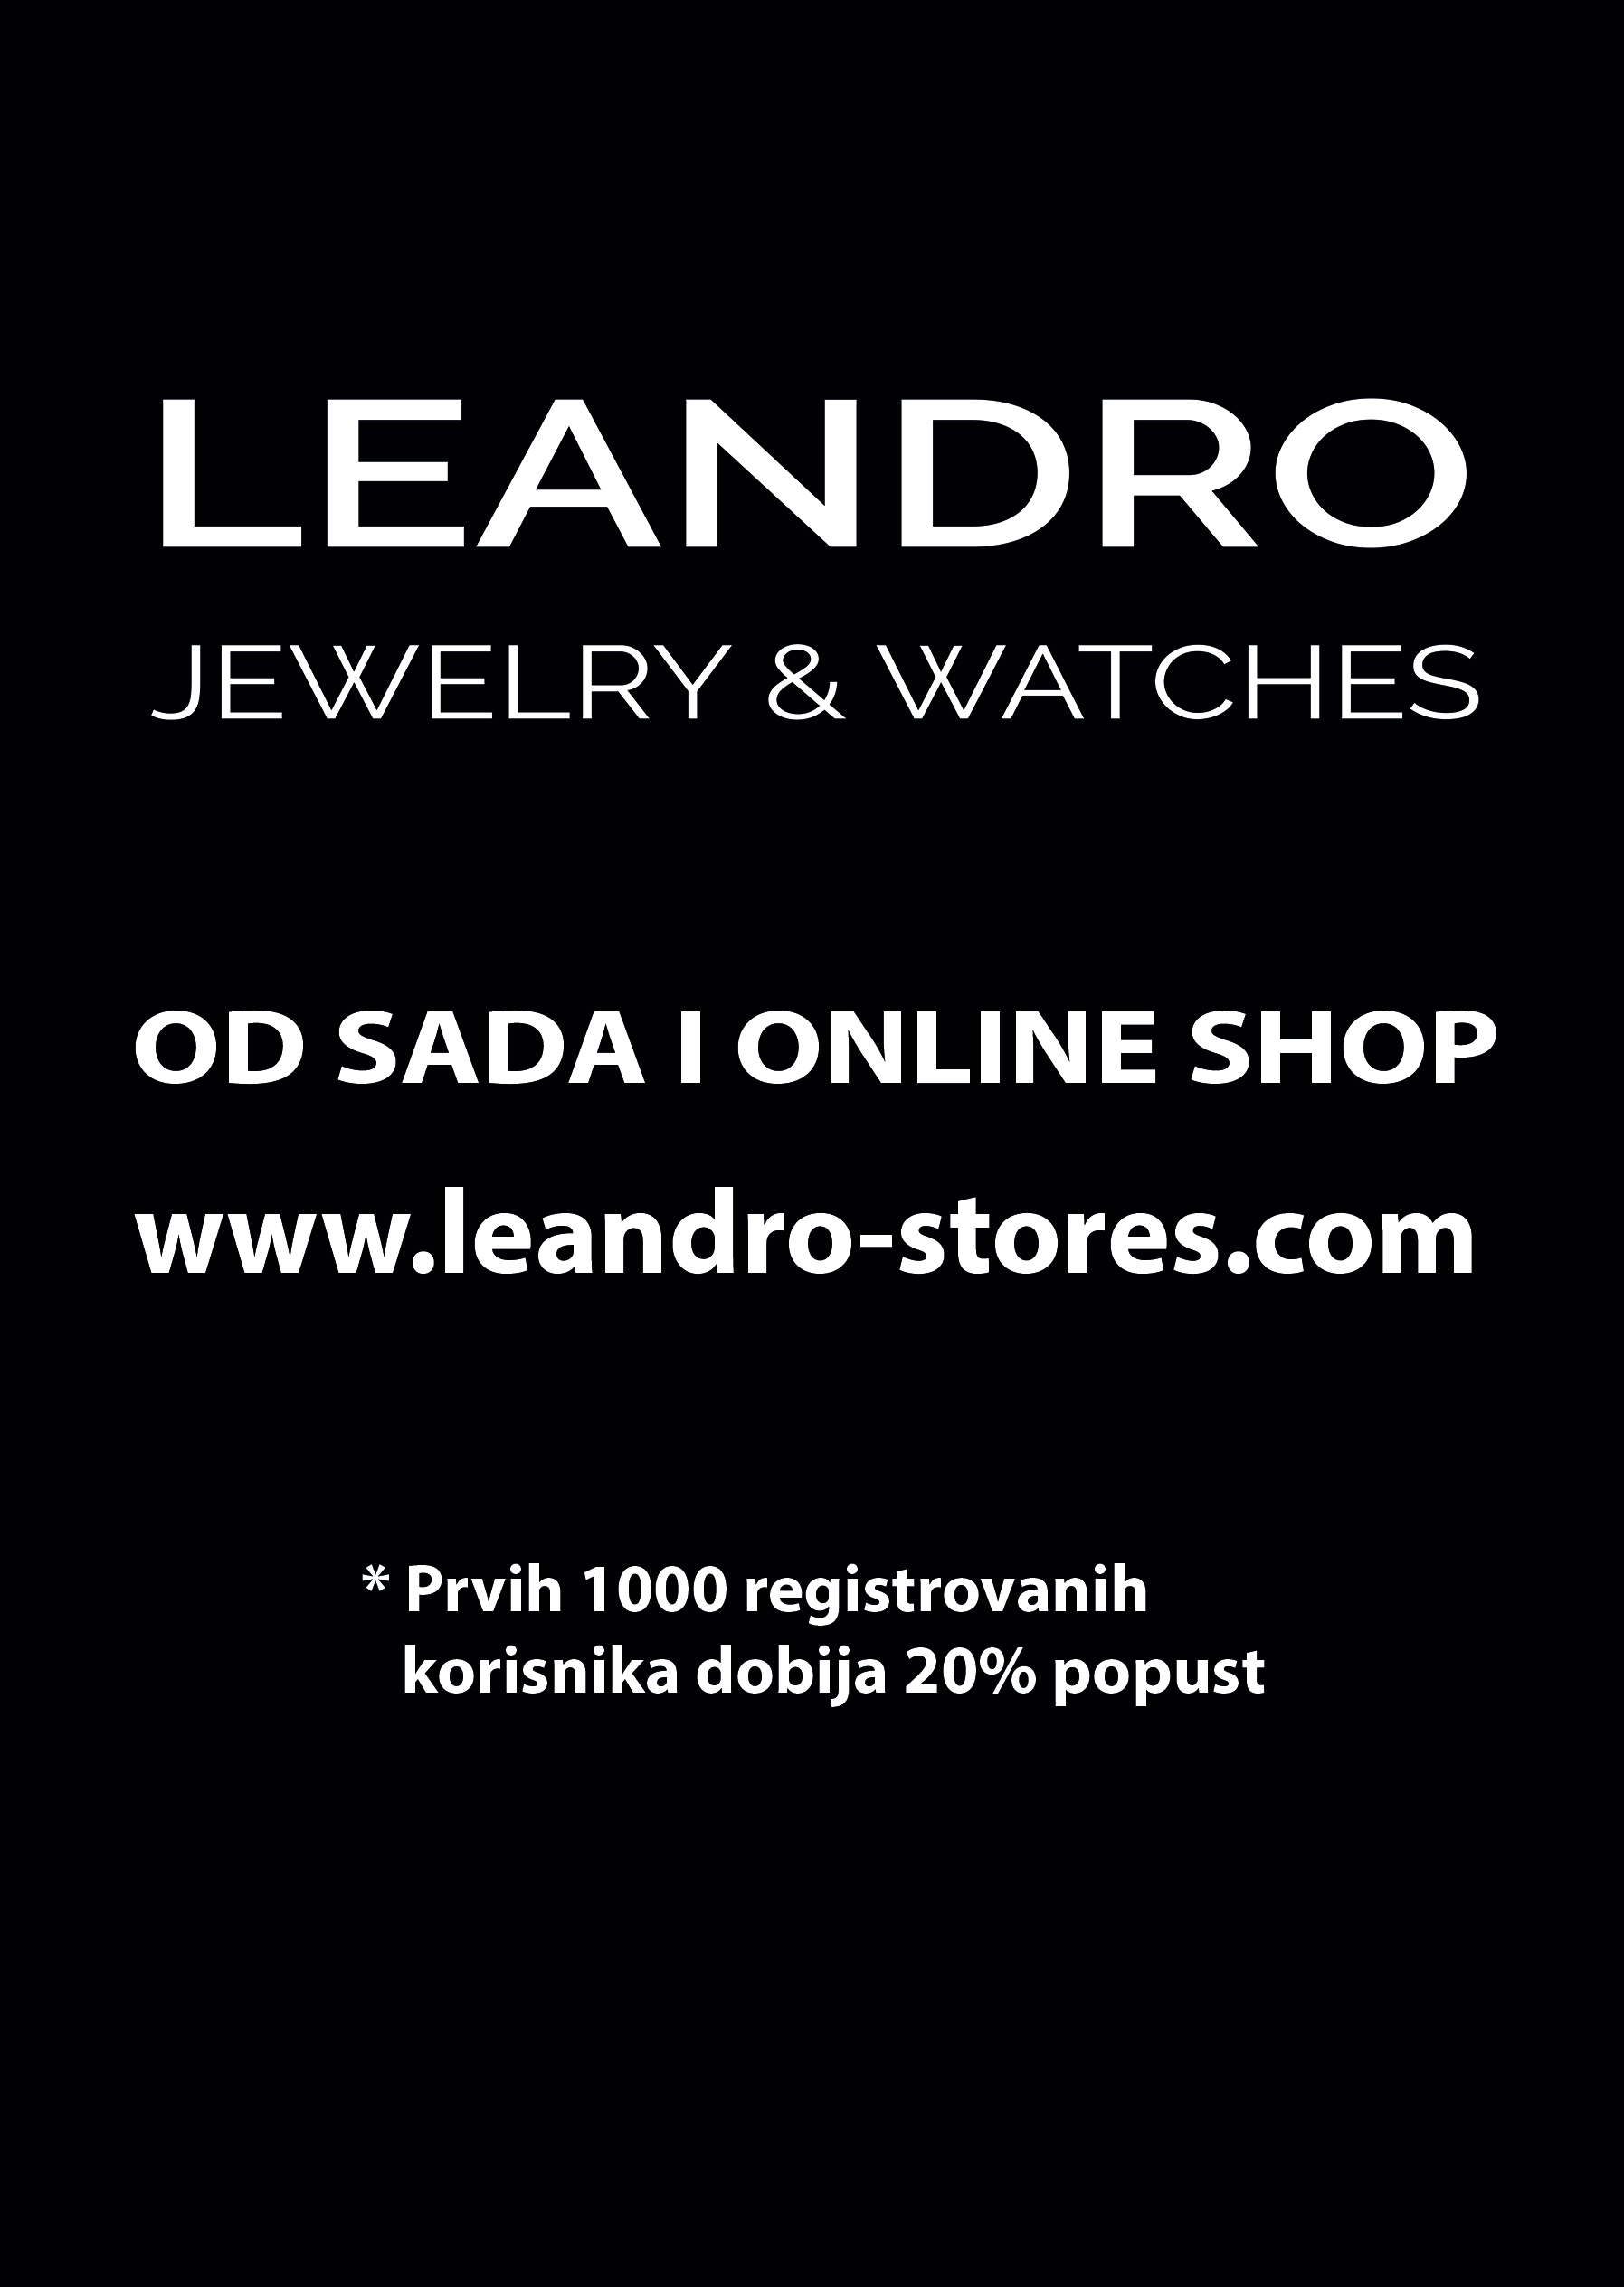 Leandro Jewelry & Watches online shop